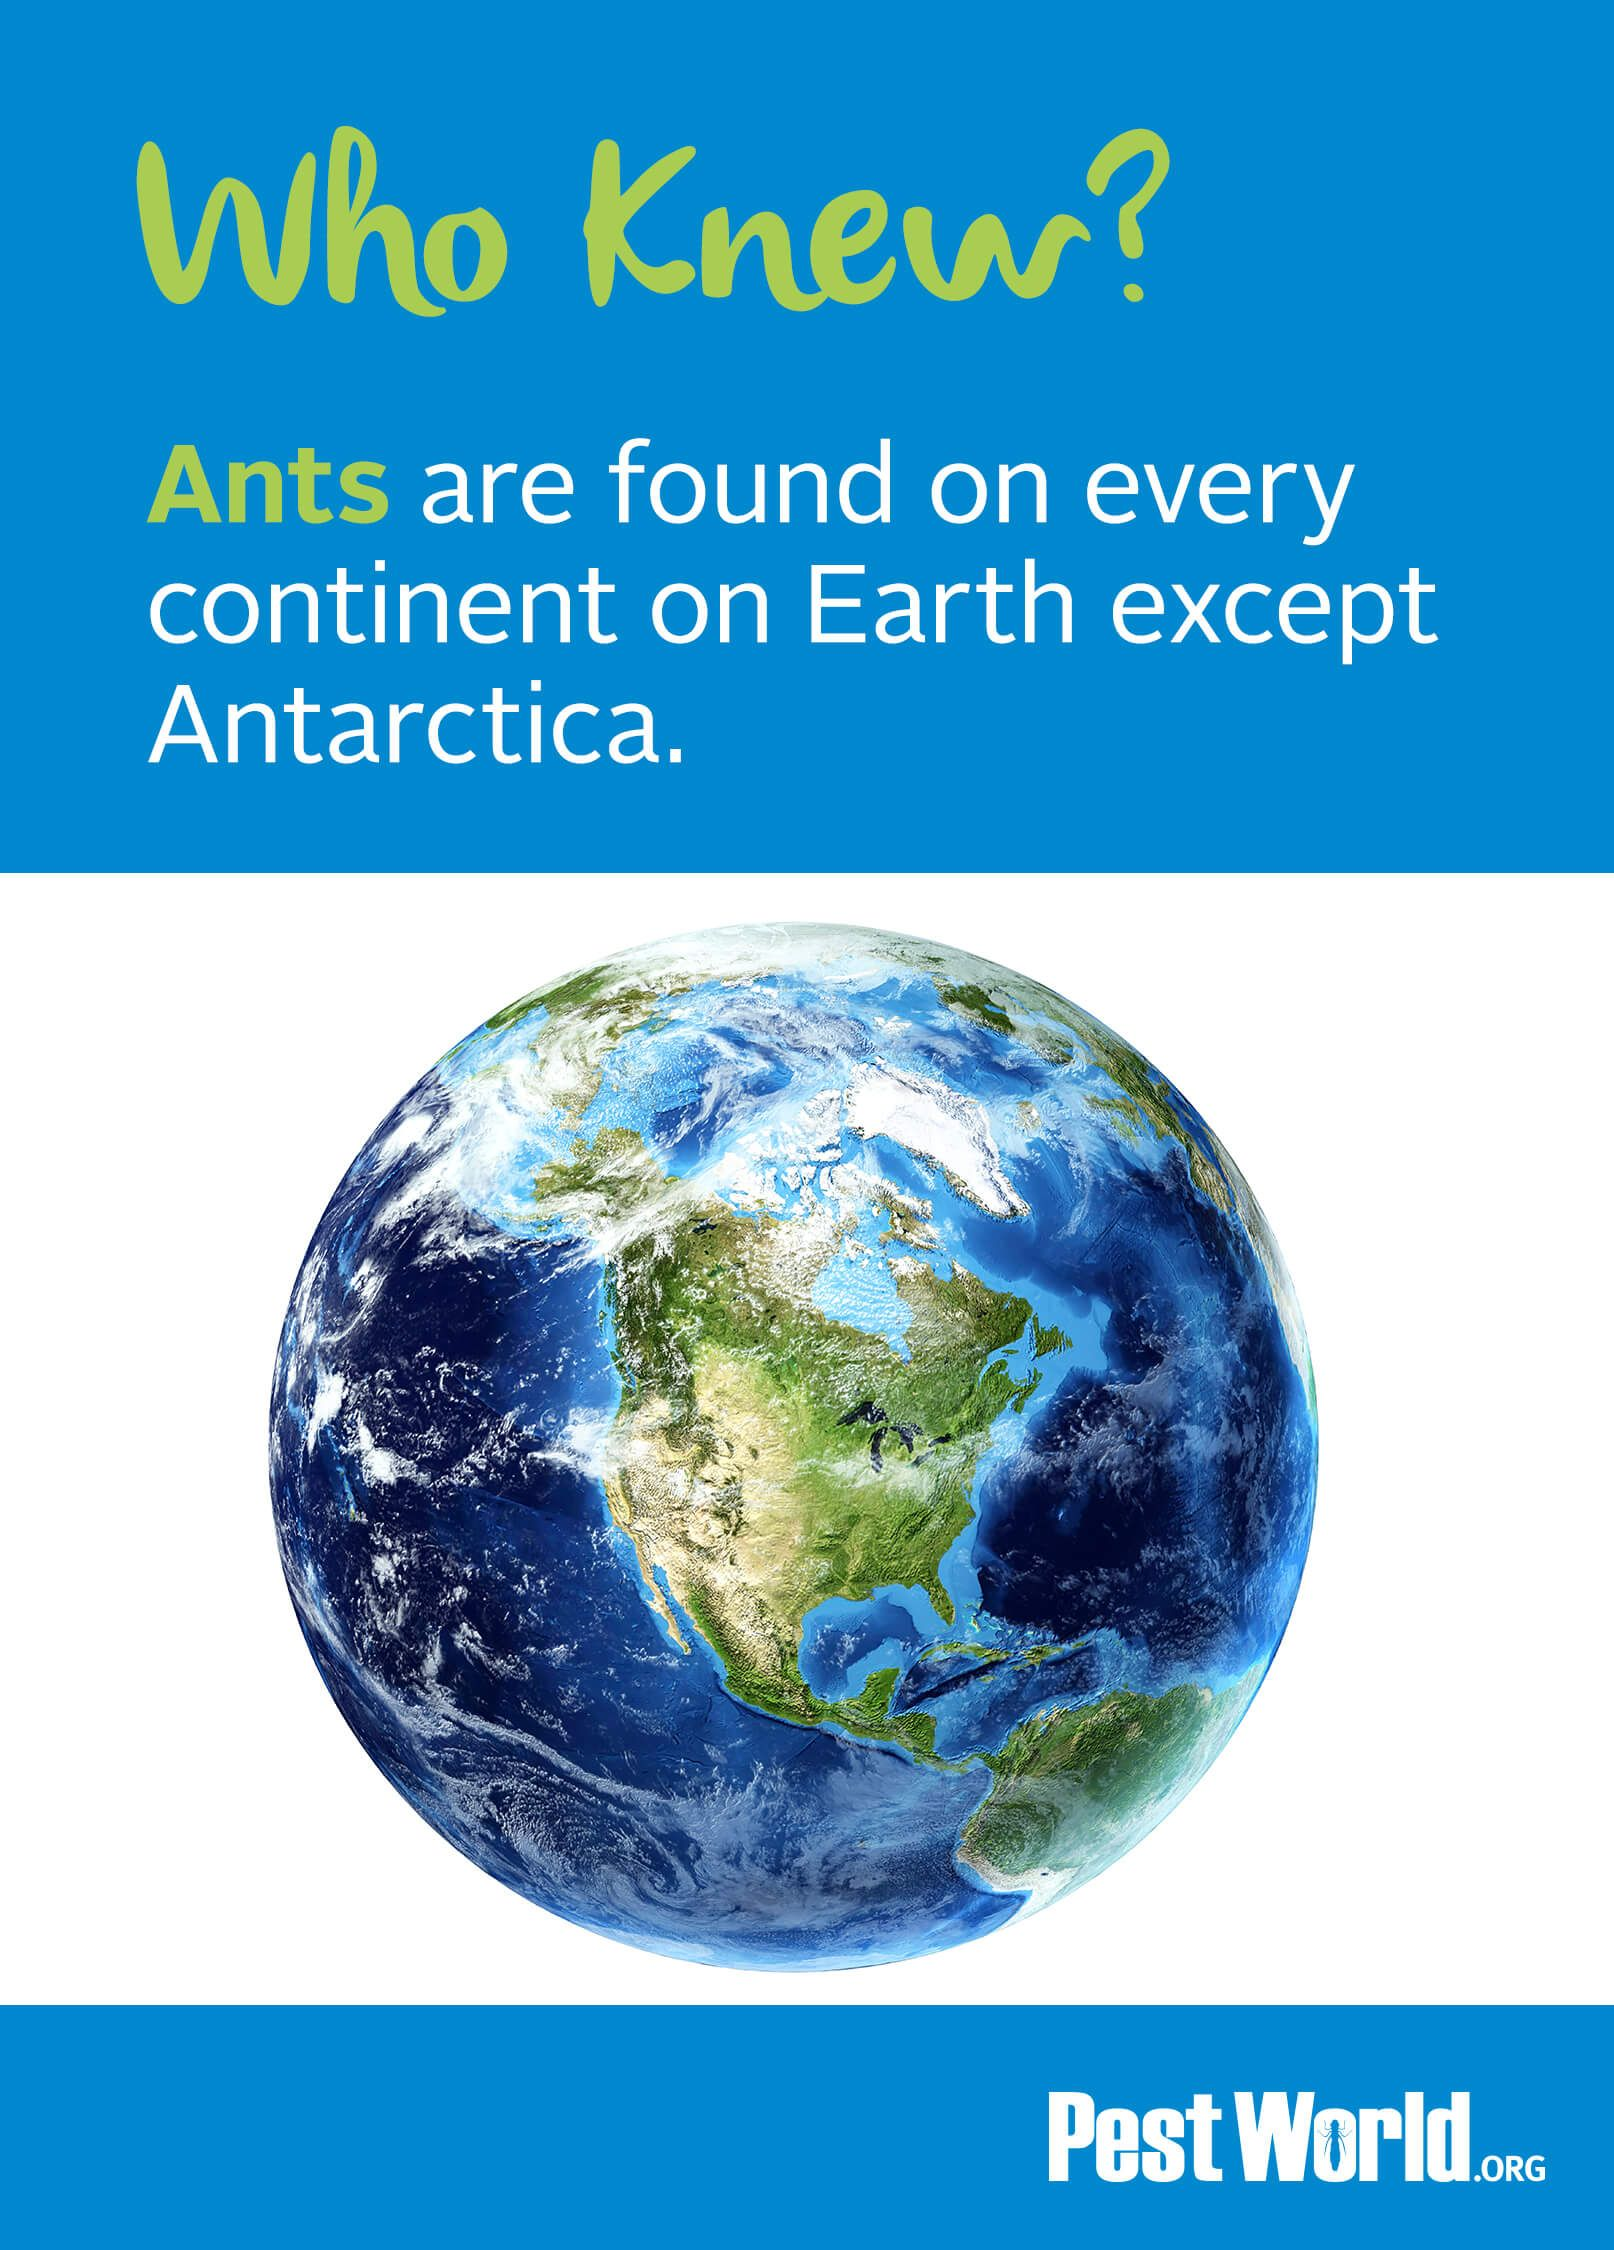 The vast distribution of ants is rivaled only by that of humans. Very impressive for such little guys! Identify the types of ants in your home here.